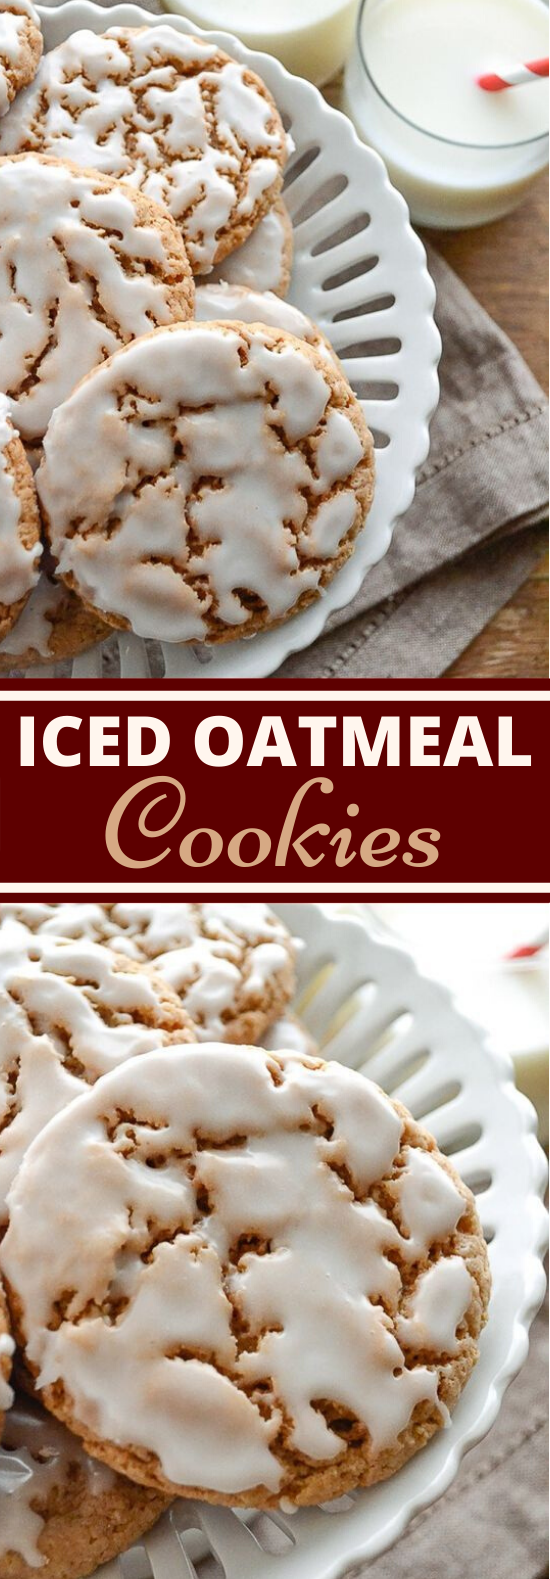 Iced Oatmeal Cookies #cookies #recipes #desserts #christmas #baking